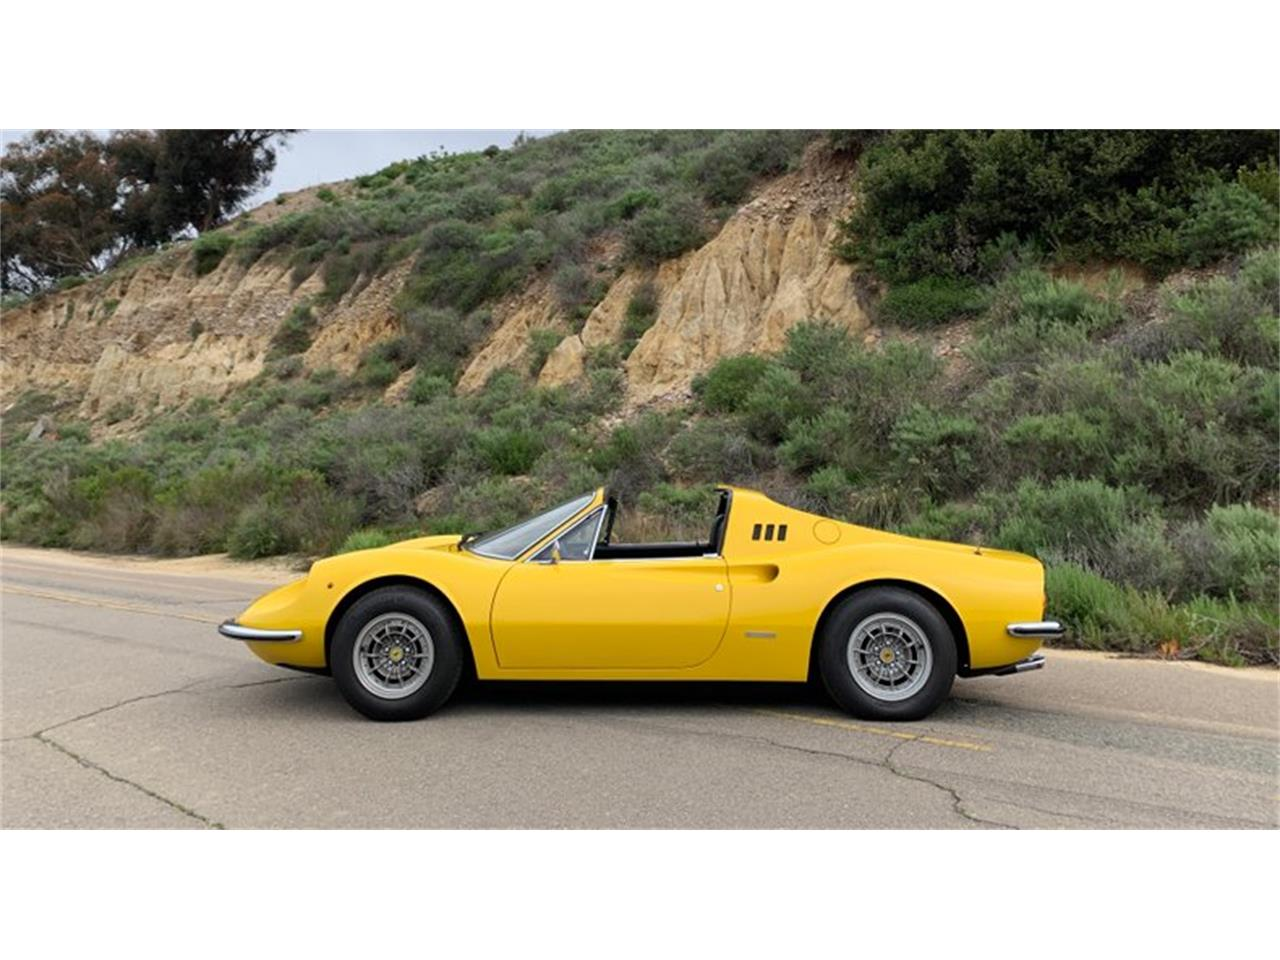 Large Picture of '73 246 GTS Dino located in San Diego California Auction Vehicle - Q4TN